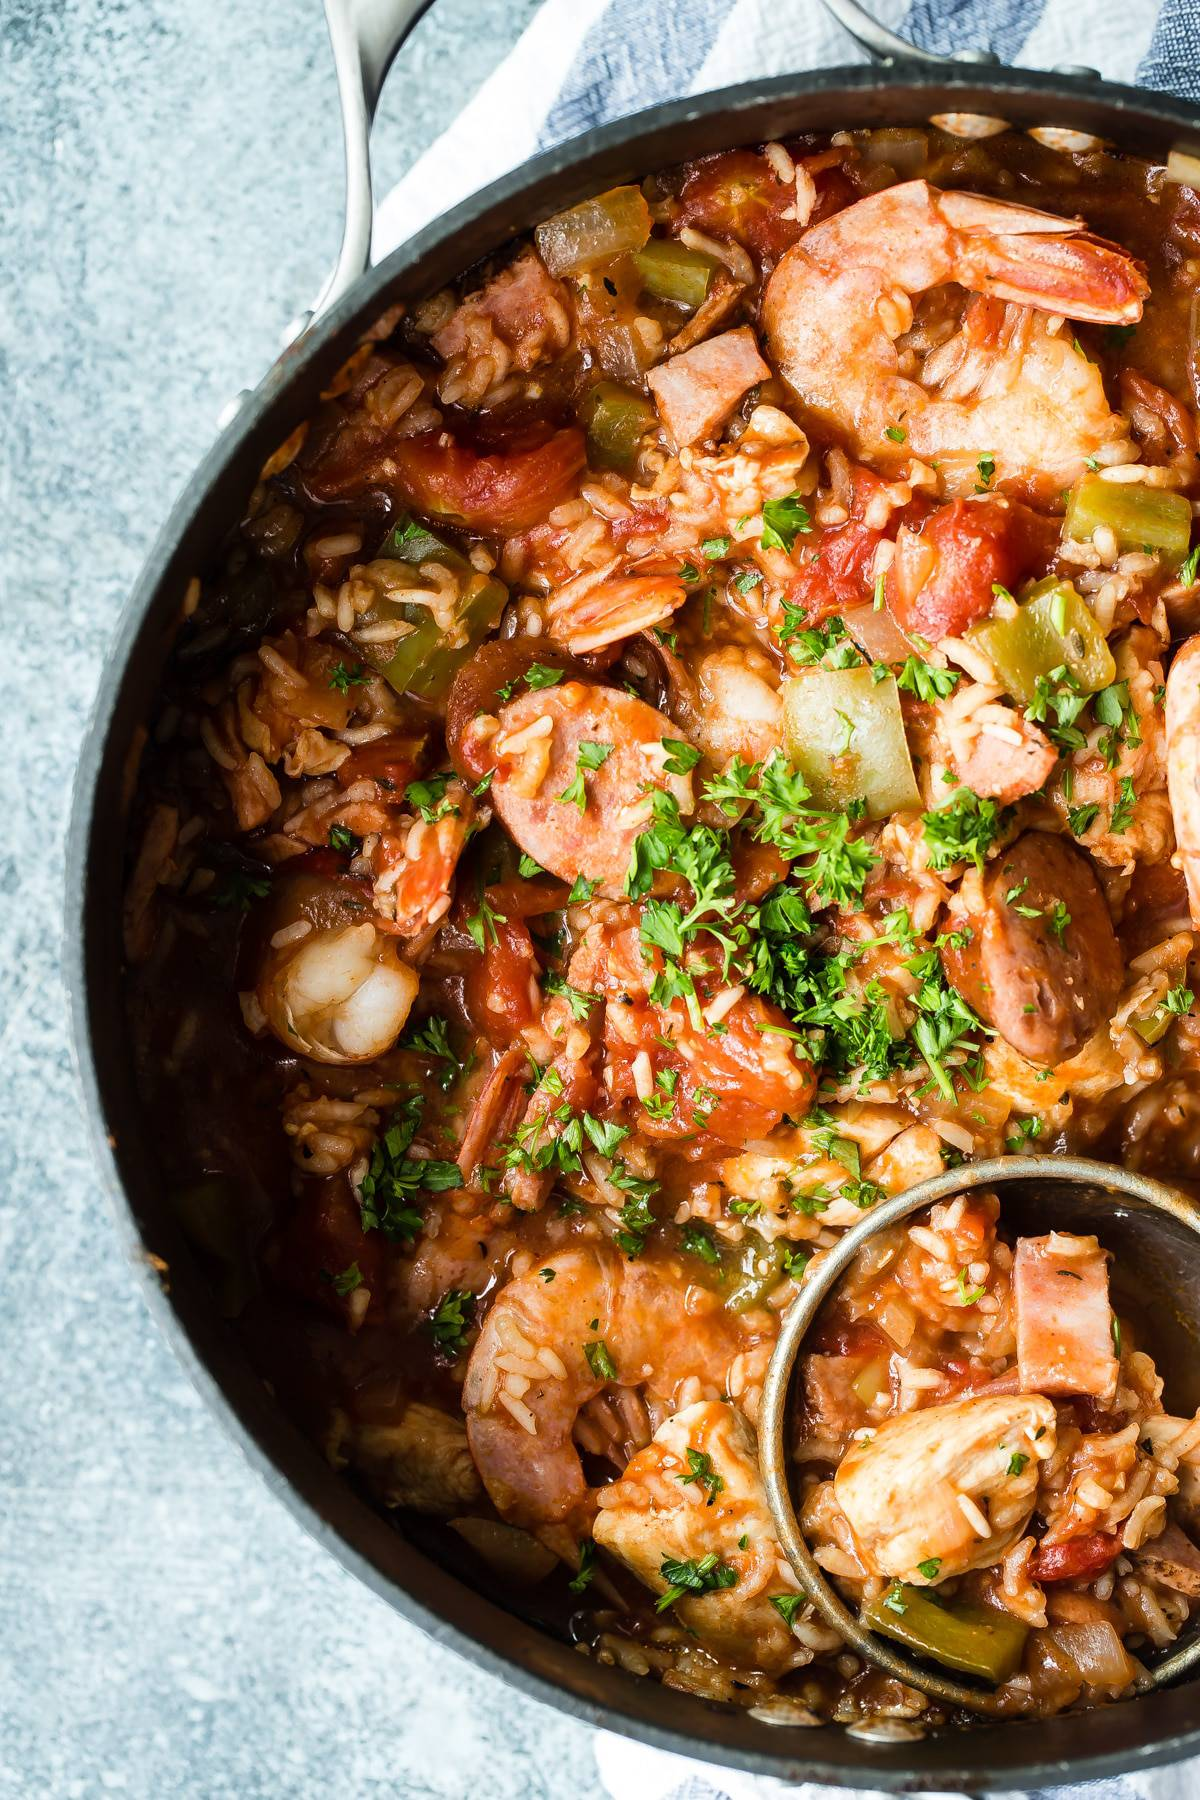 Cajun jambalaya with chicken, sausage and shrimp